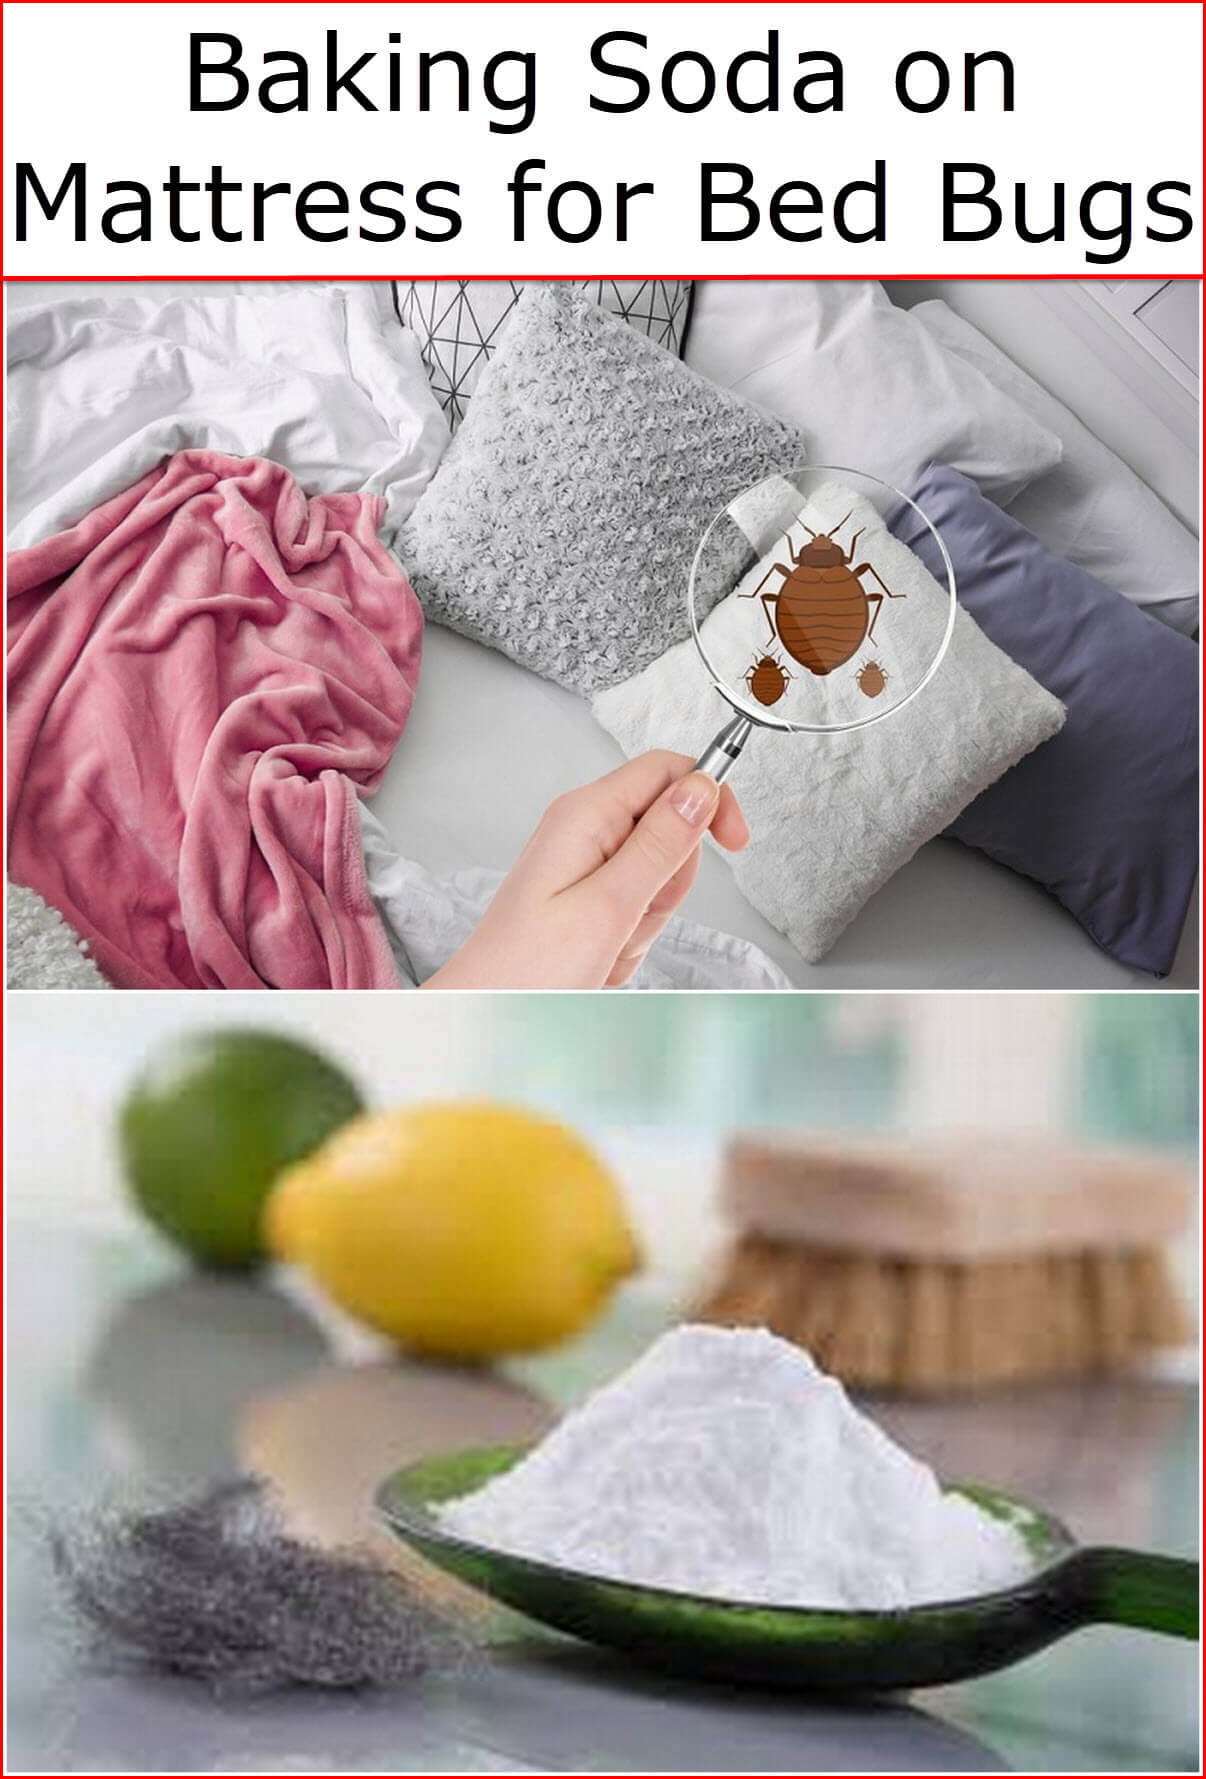 baking soda on mattress for bed bugs baking soda uses and diy home remedies. Black Bedroom Furniture Sets. Home Design Ideas